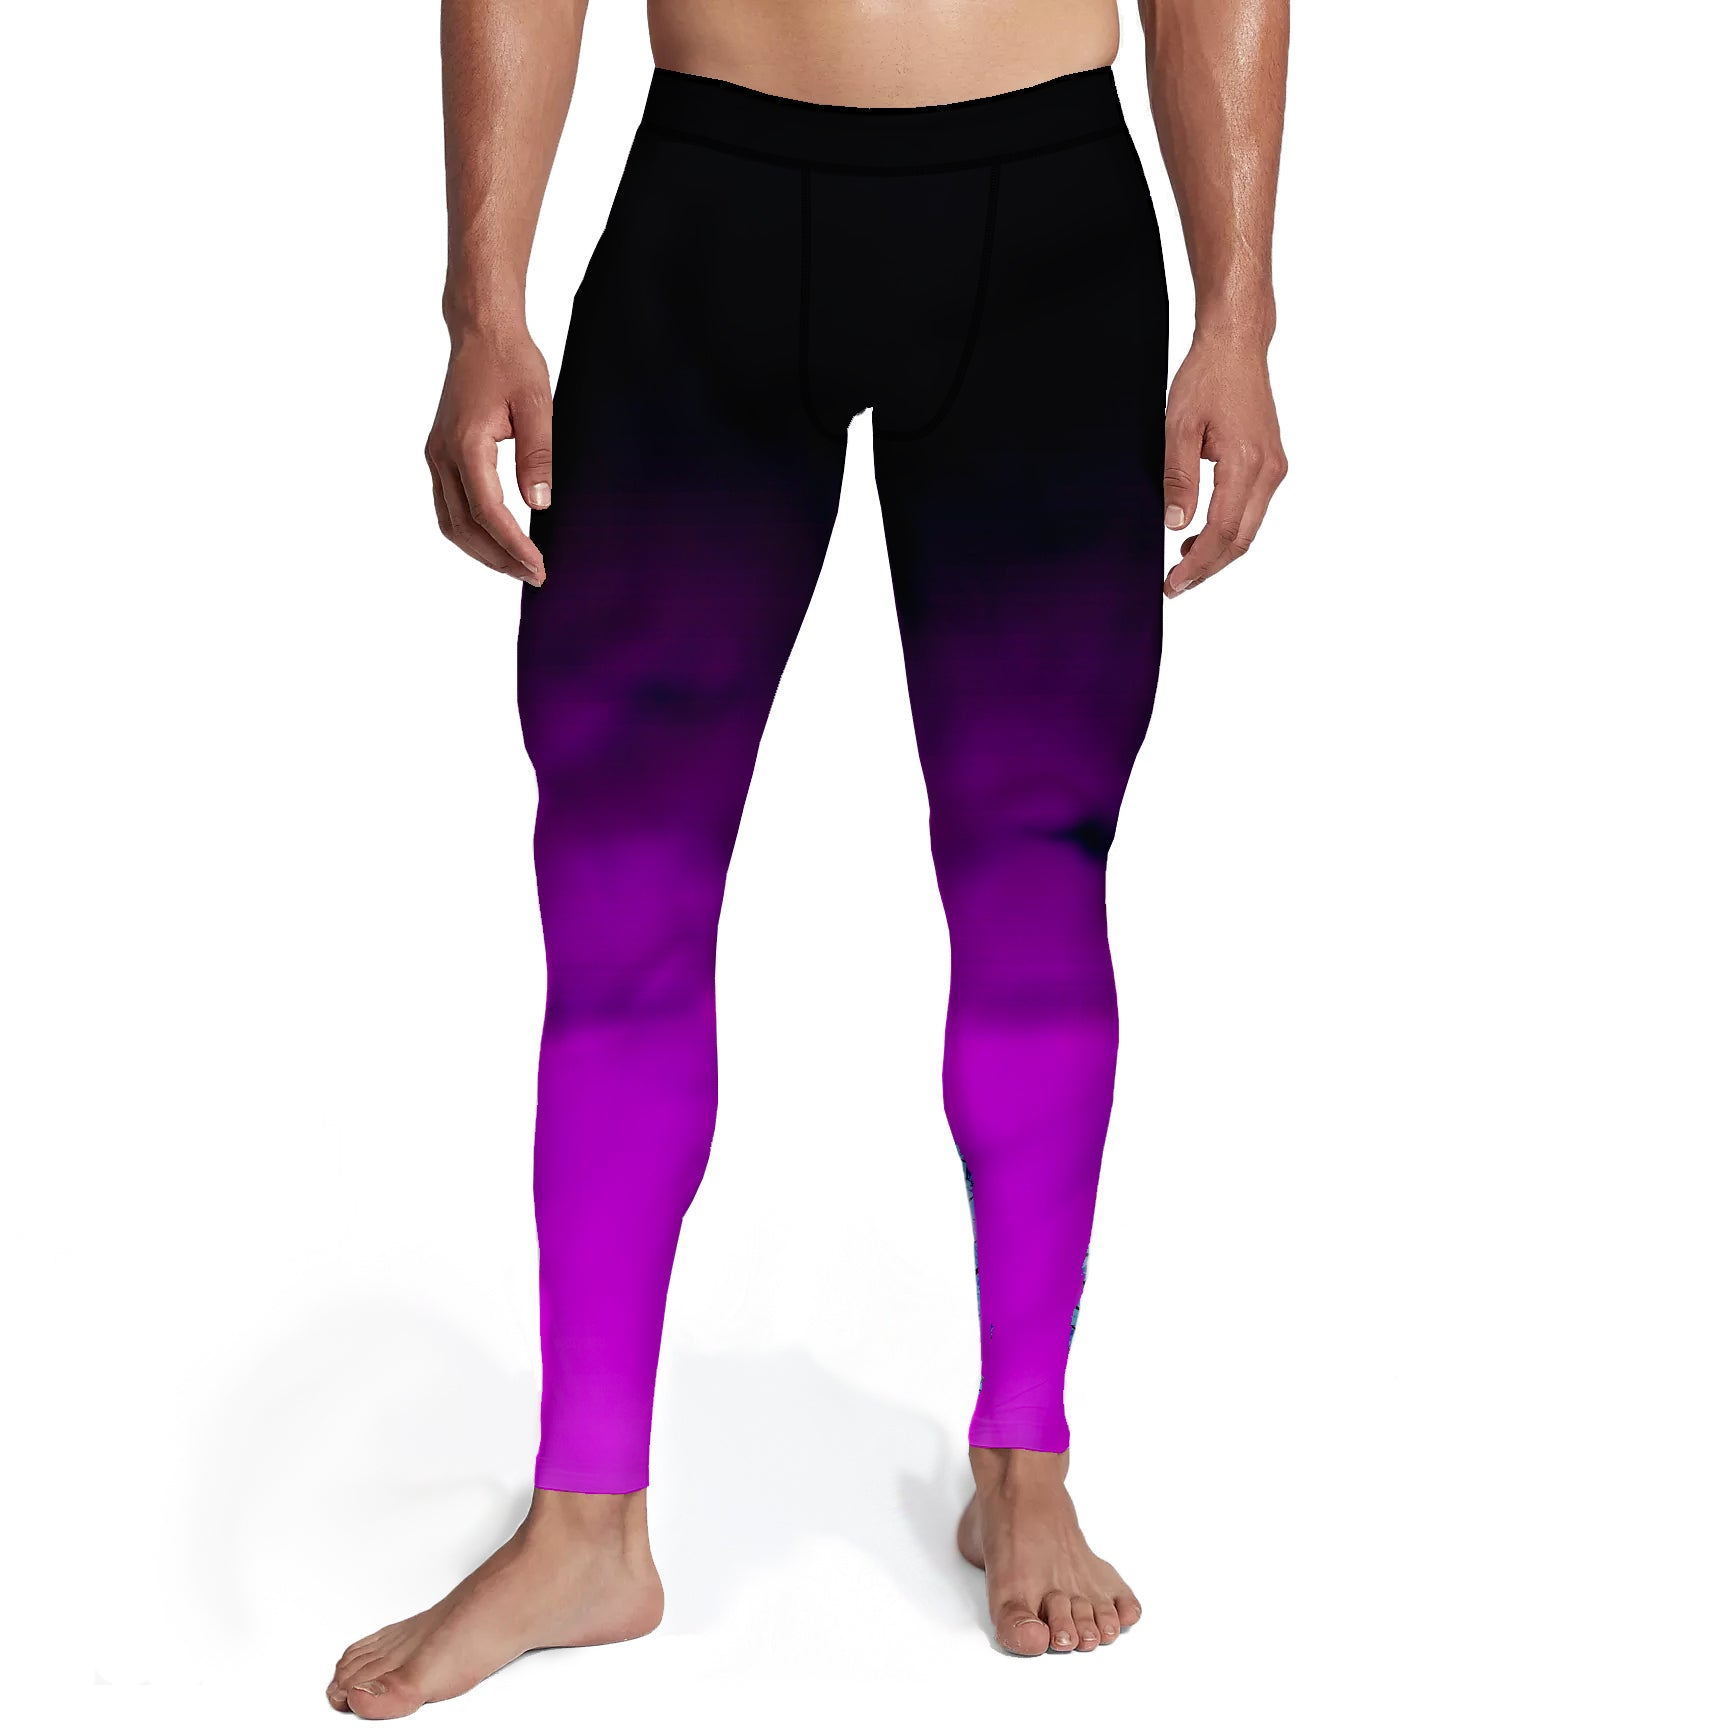 Men's Black Pink Ombre Tights,S / Soft Lycra / Multicolored